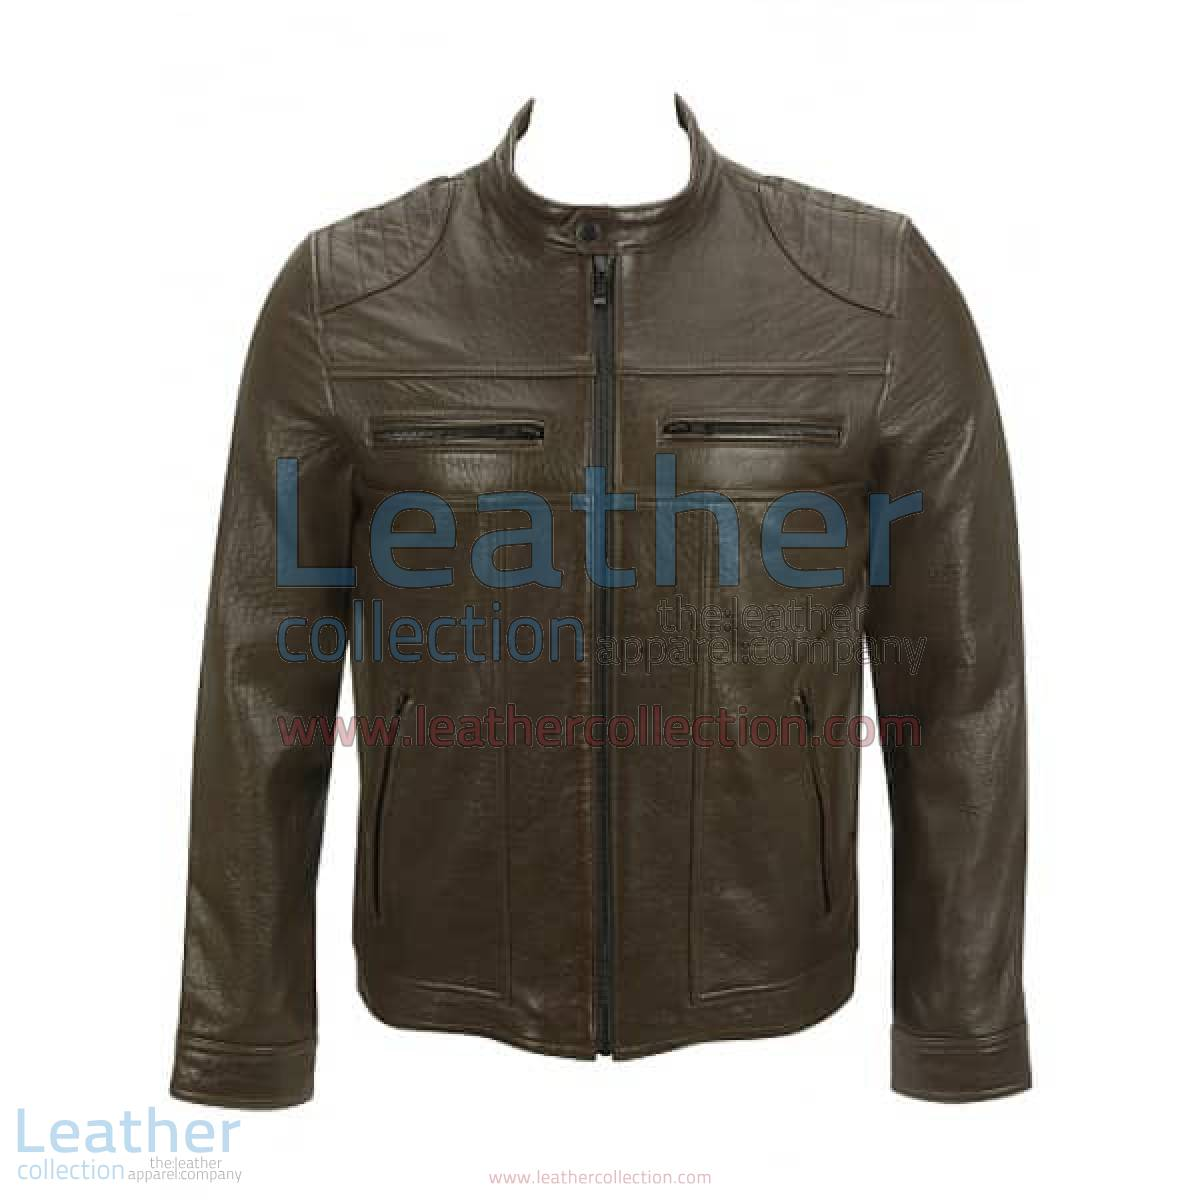 Saddle Shoulder Antique Leather Jacket | leather jacket,antique leather jacket